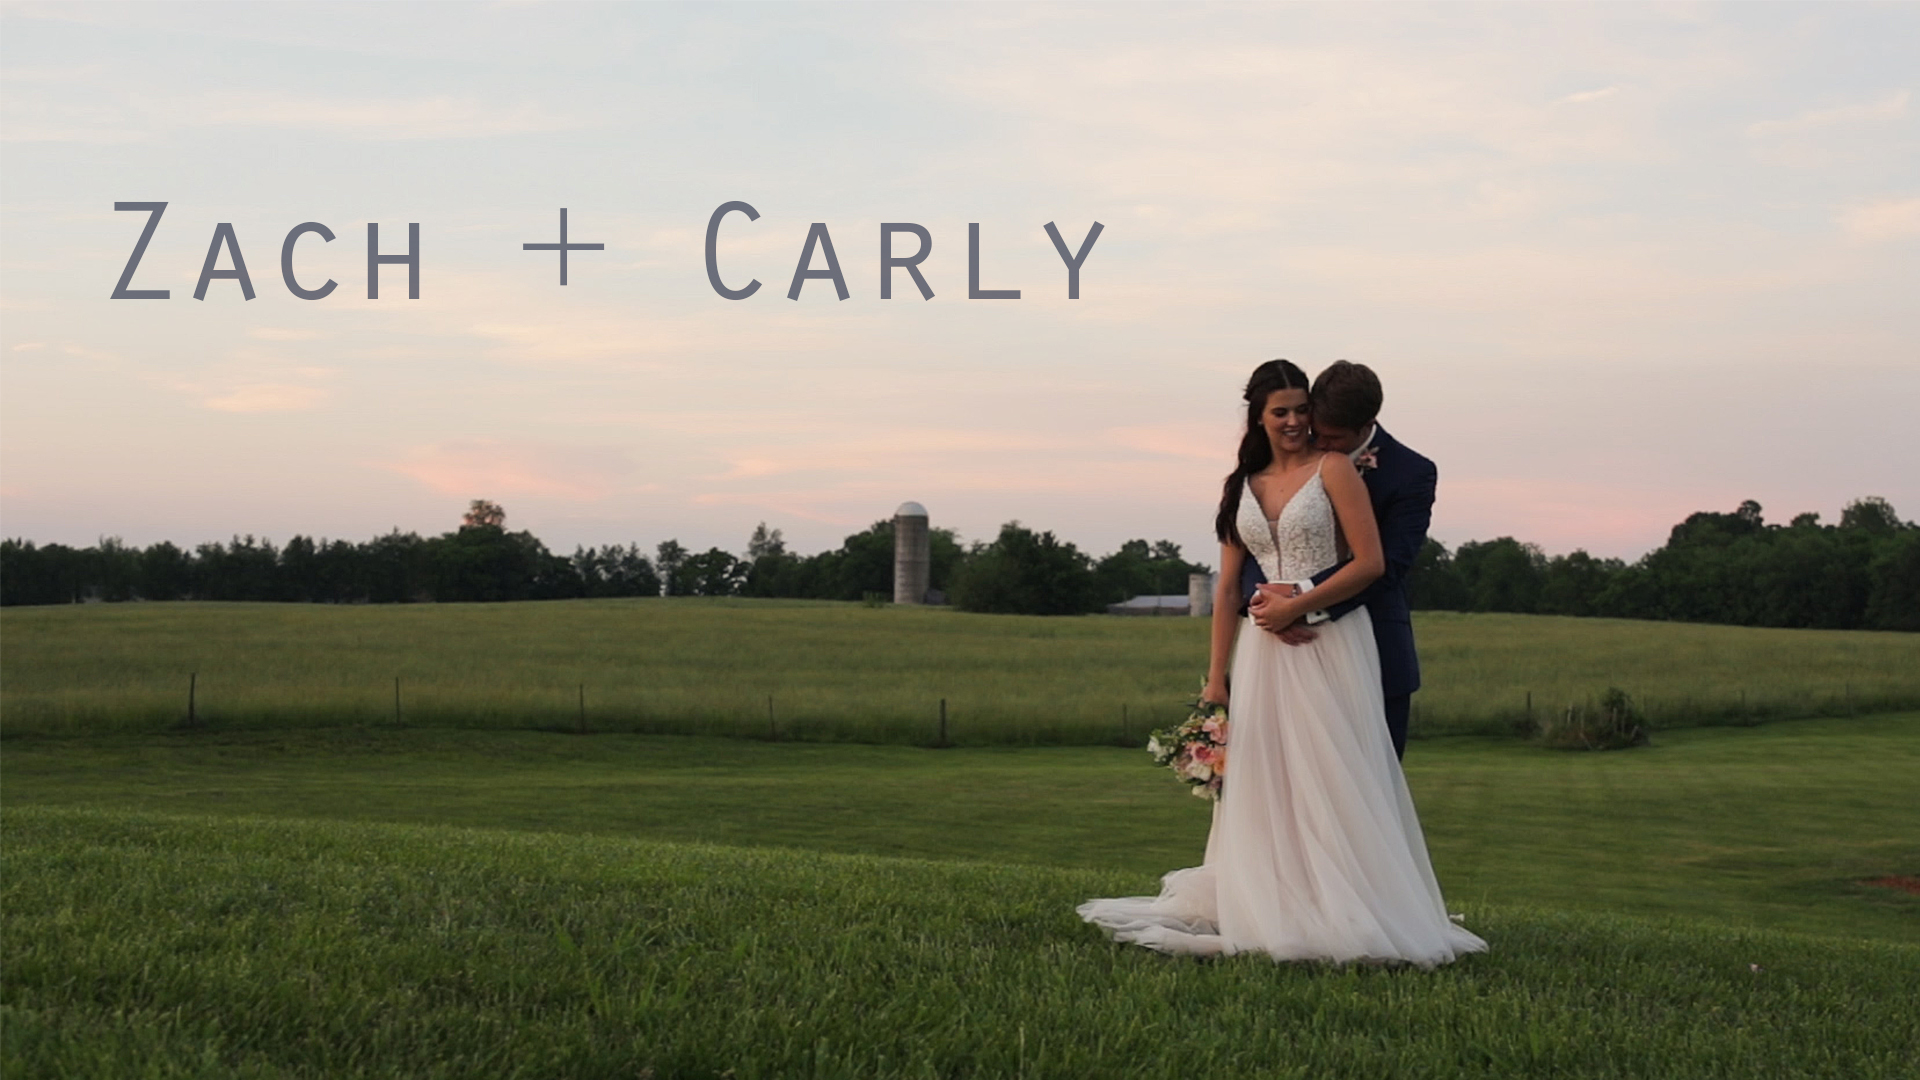 Zach + Carly | Sonora, Kentucky | A Family Farm